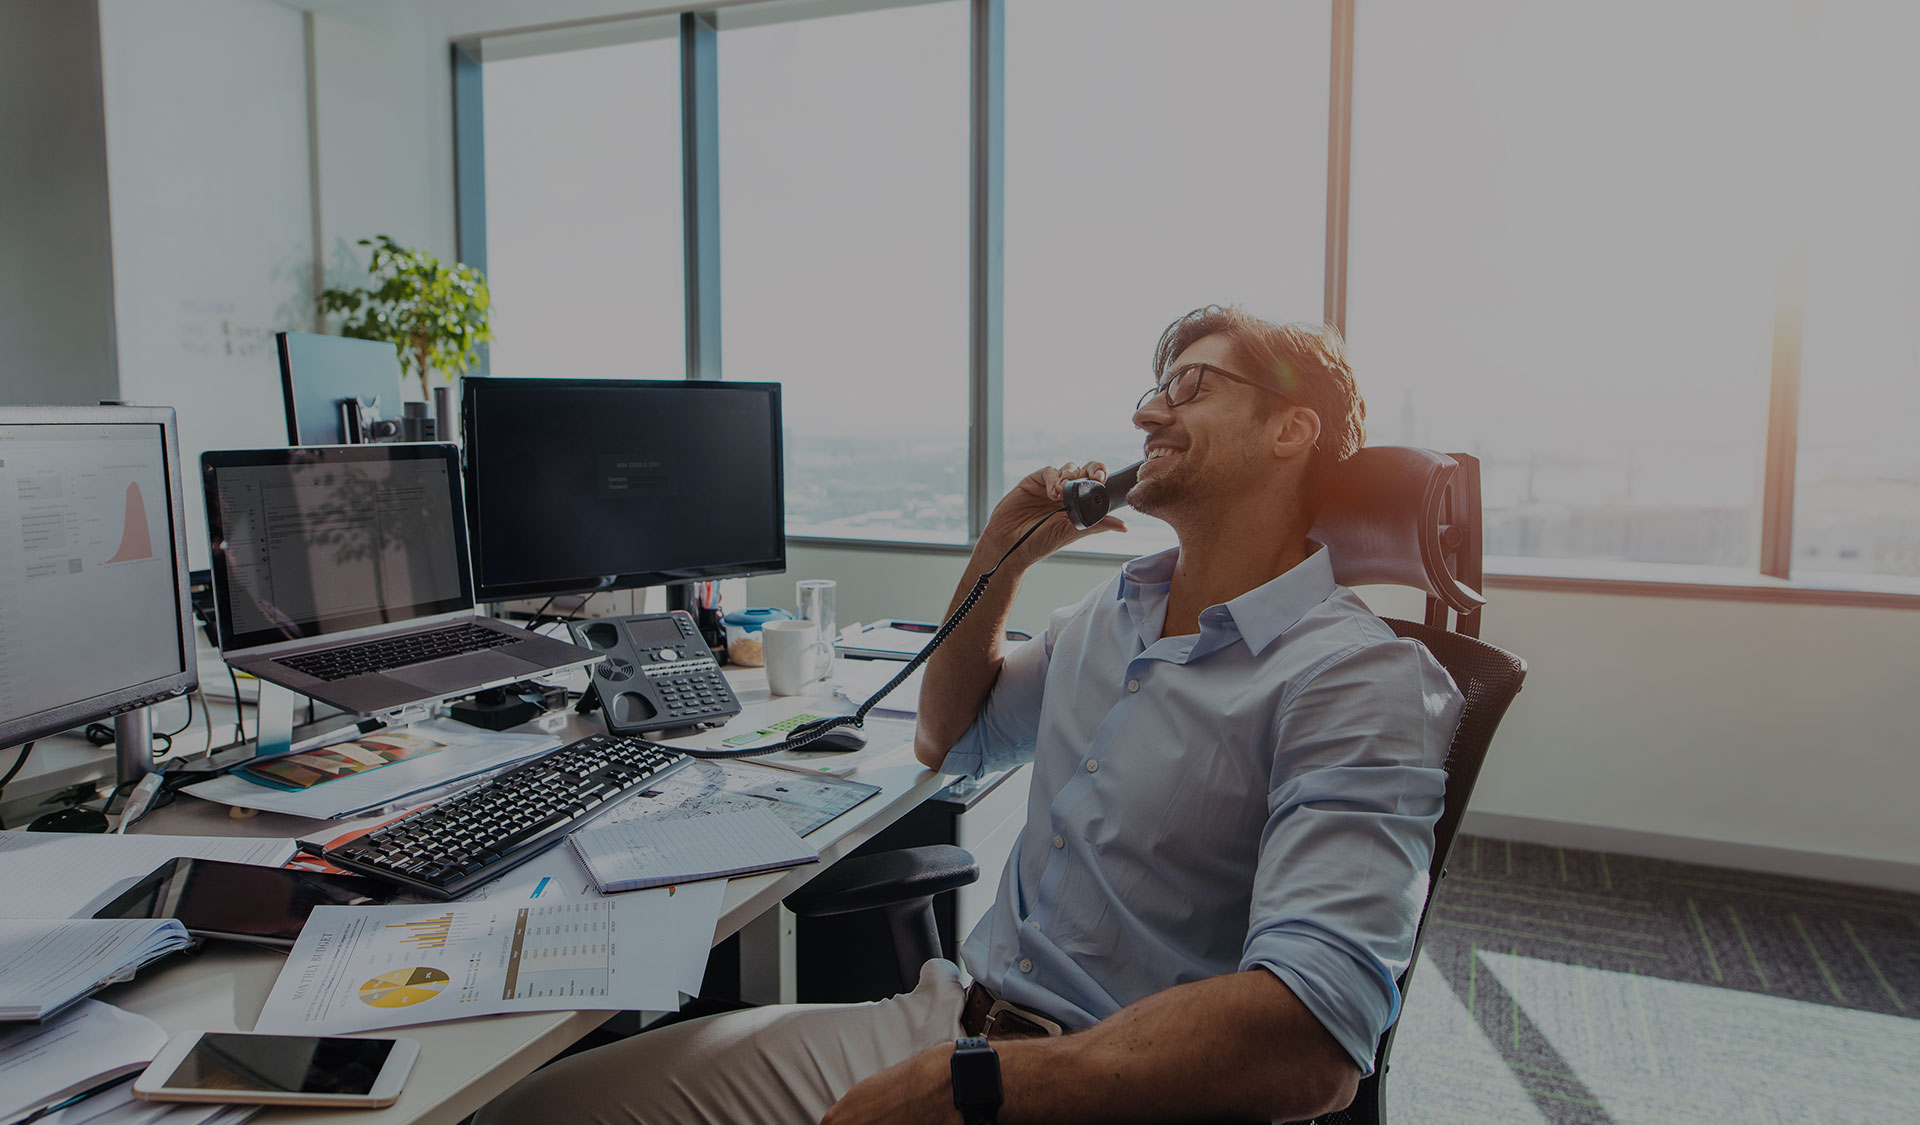 A business man using Cloudtalk at his desk.